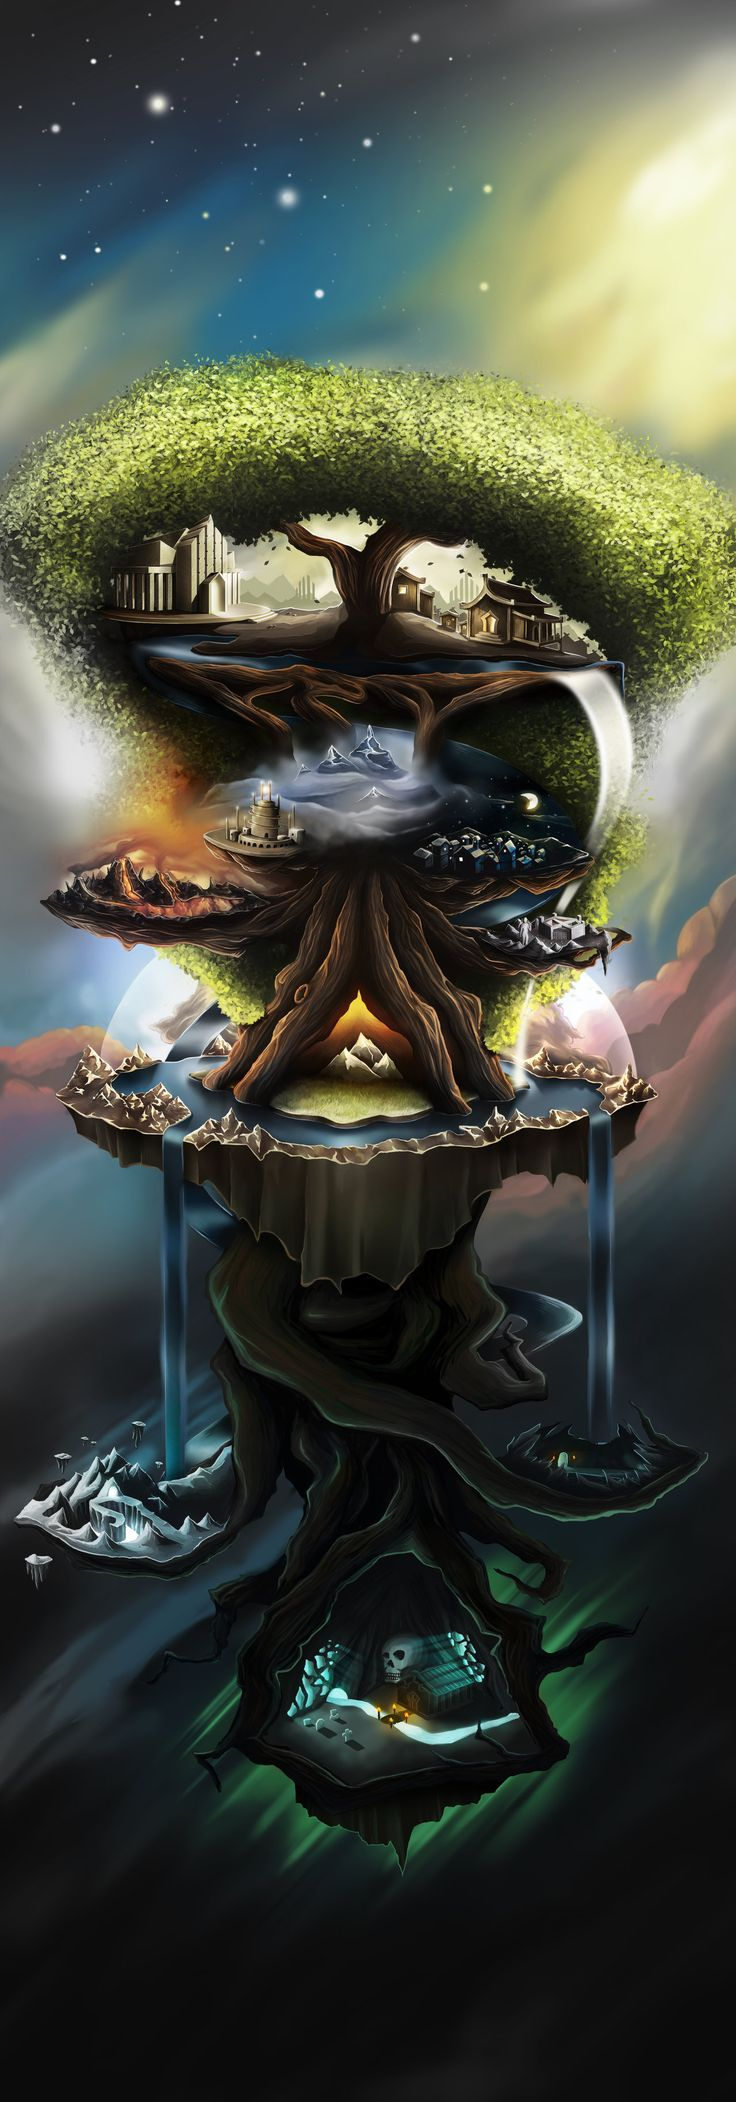 Yggdrasil Tree Wallpaper Yggdrasil the world treeby